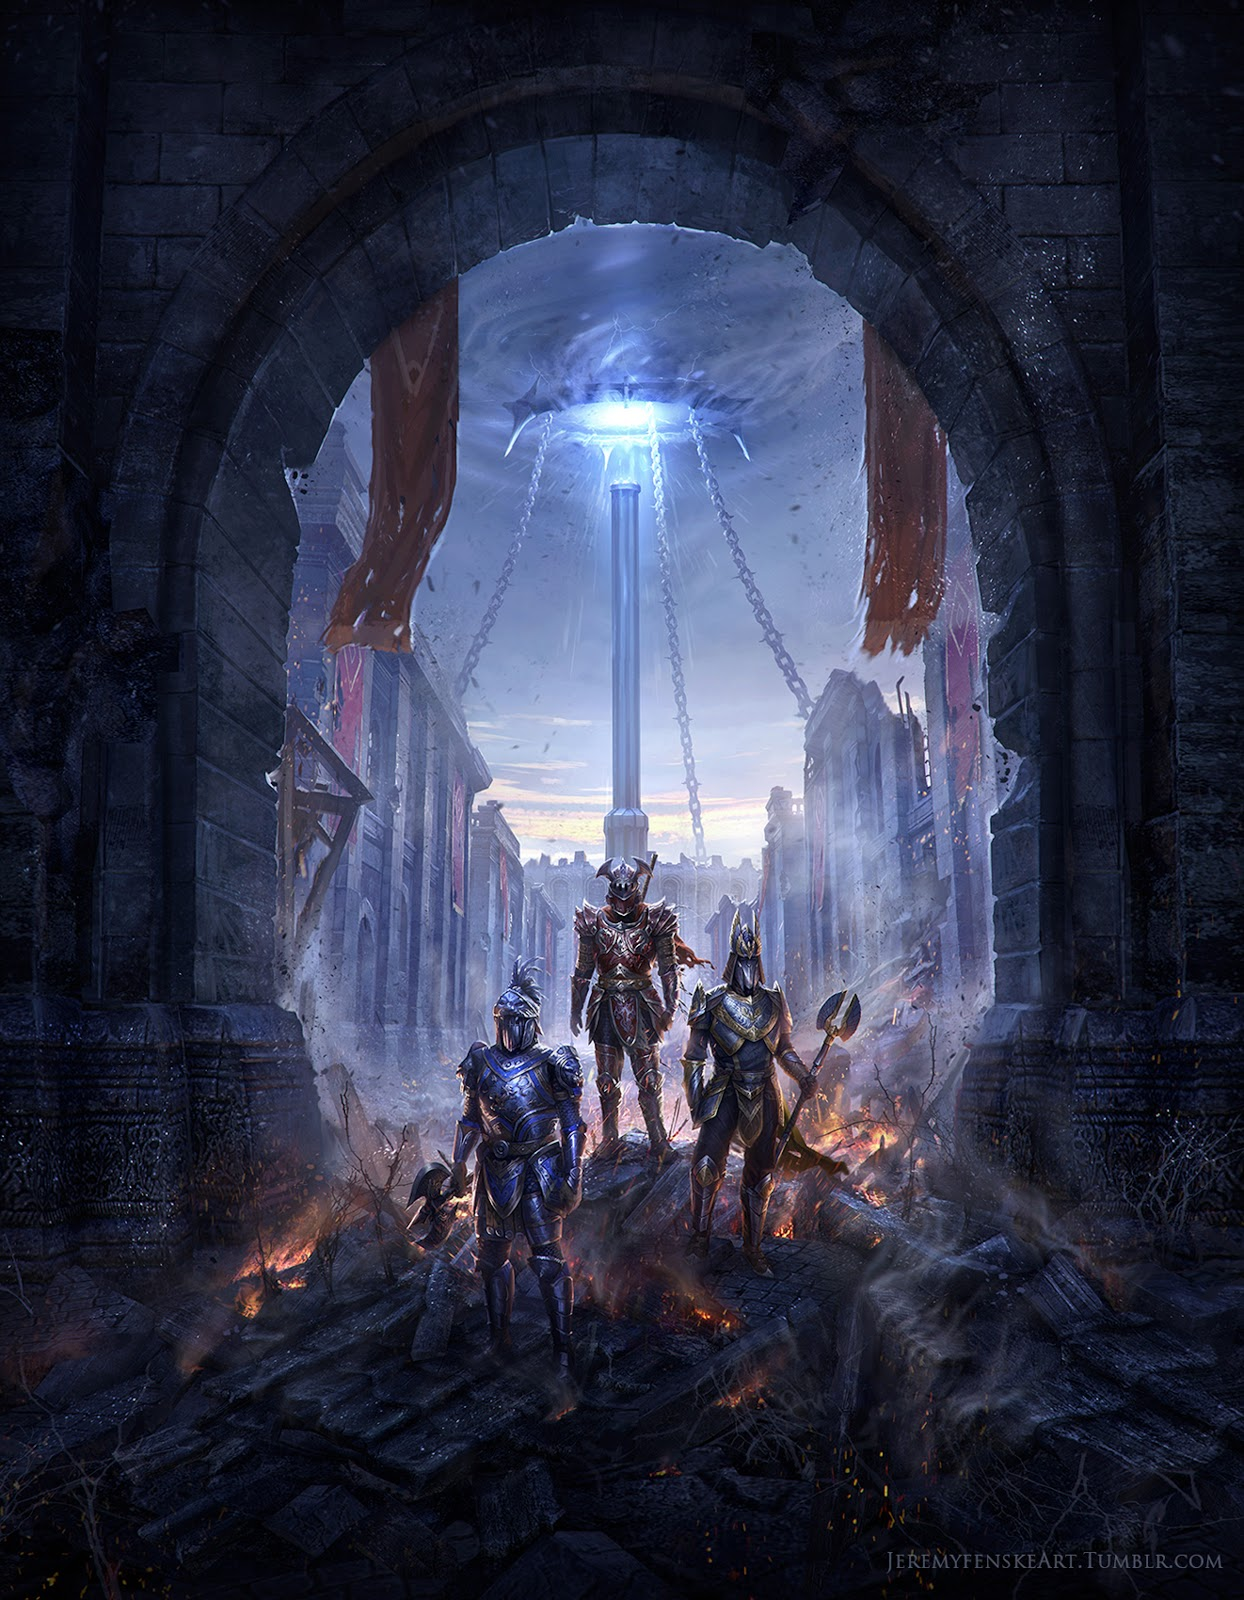 Nice Anime Wallpaper Jeremy Fenske Art Eso Imperial City Illustrations